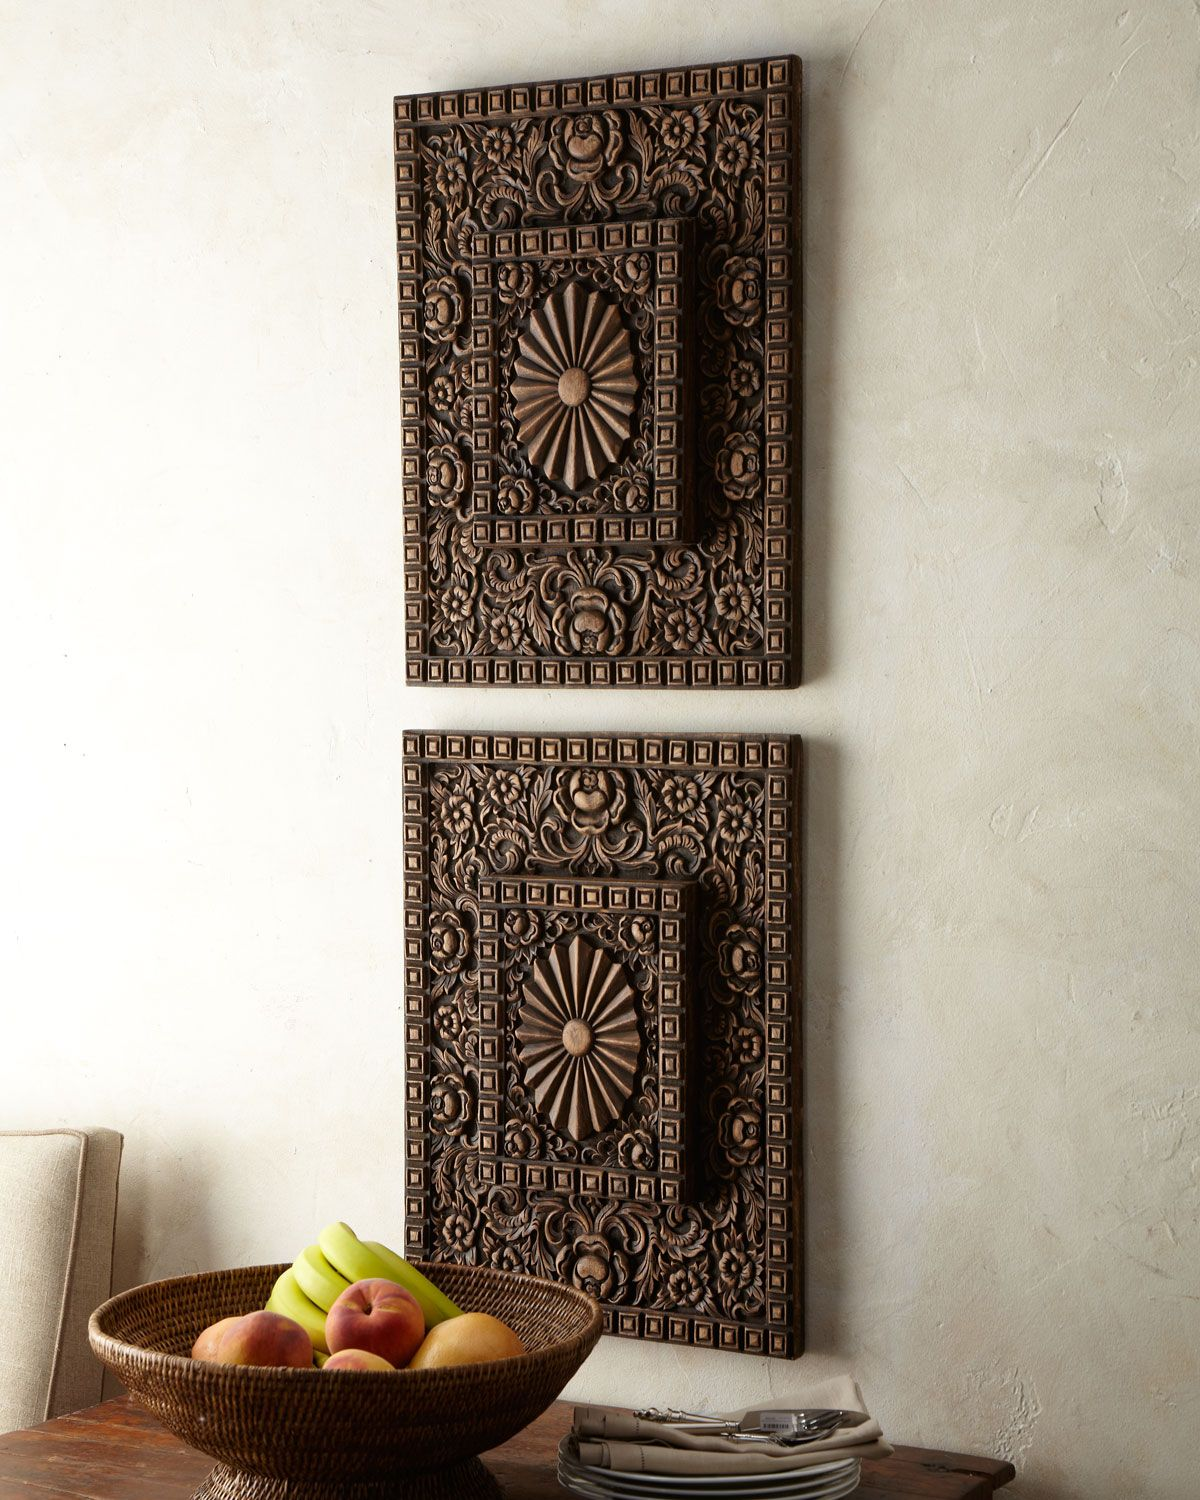 httparchinetixcometched wood wall decor - Wooden Wall Decoration Ideas